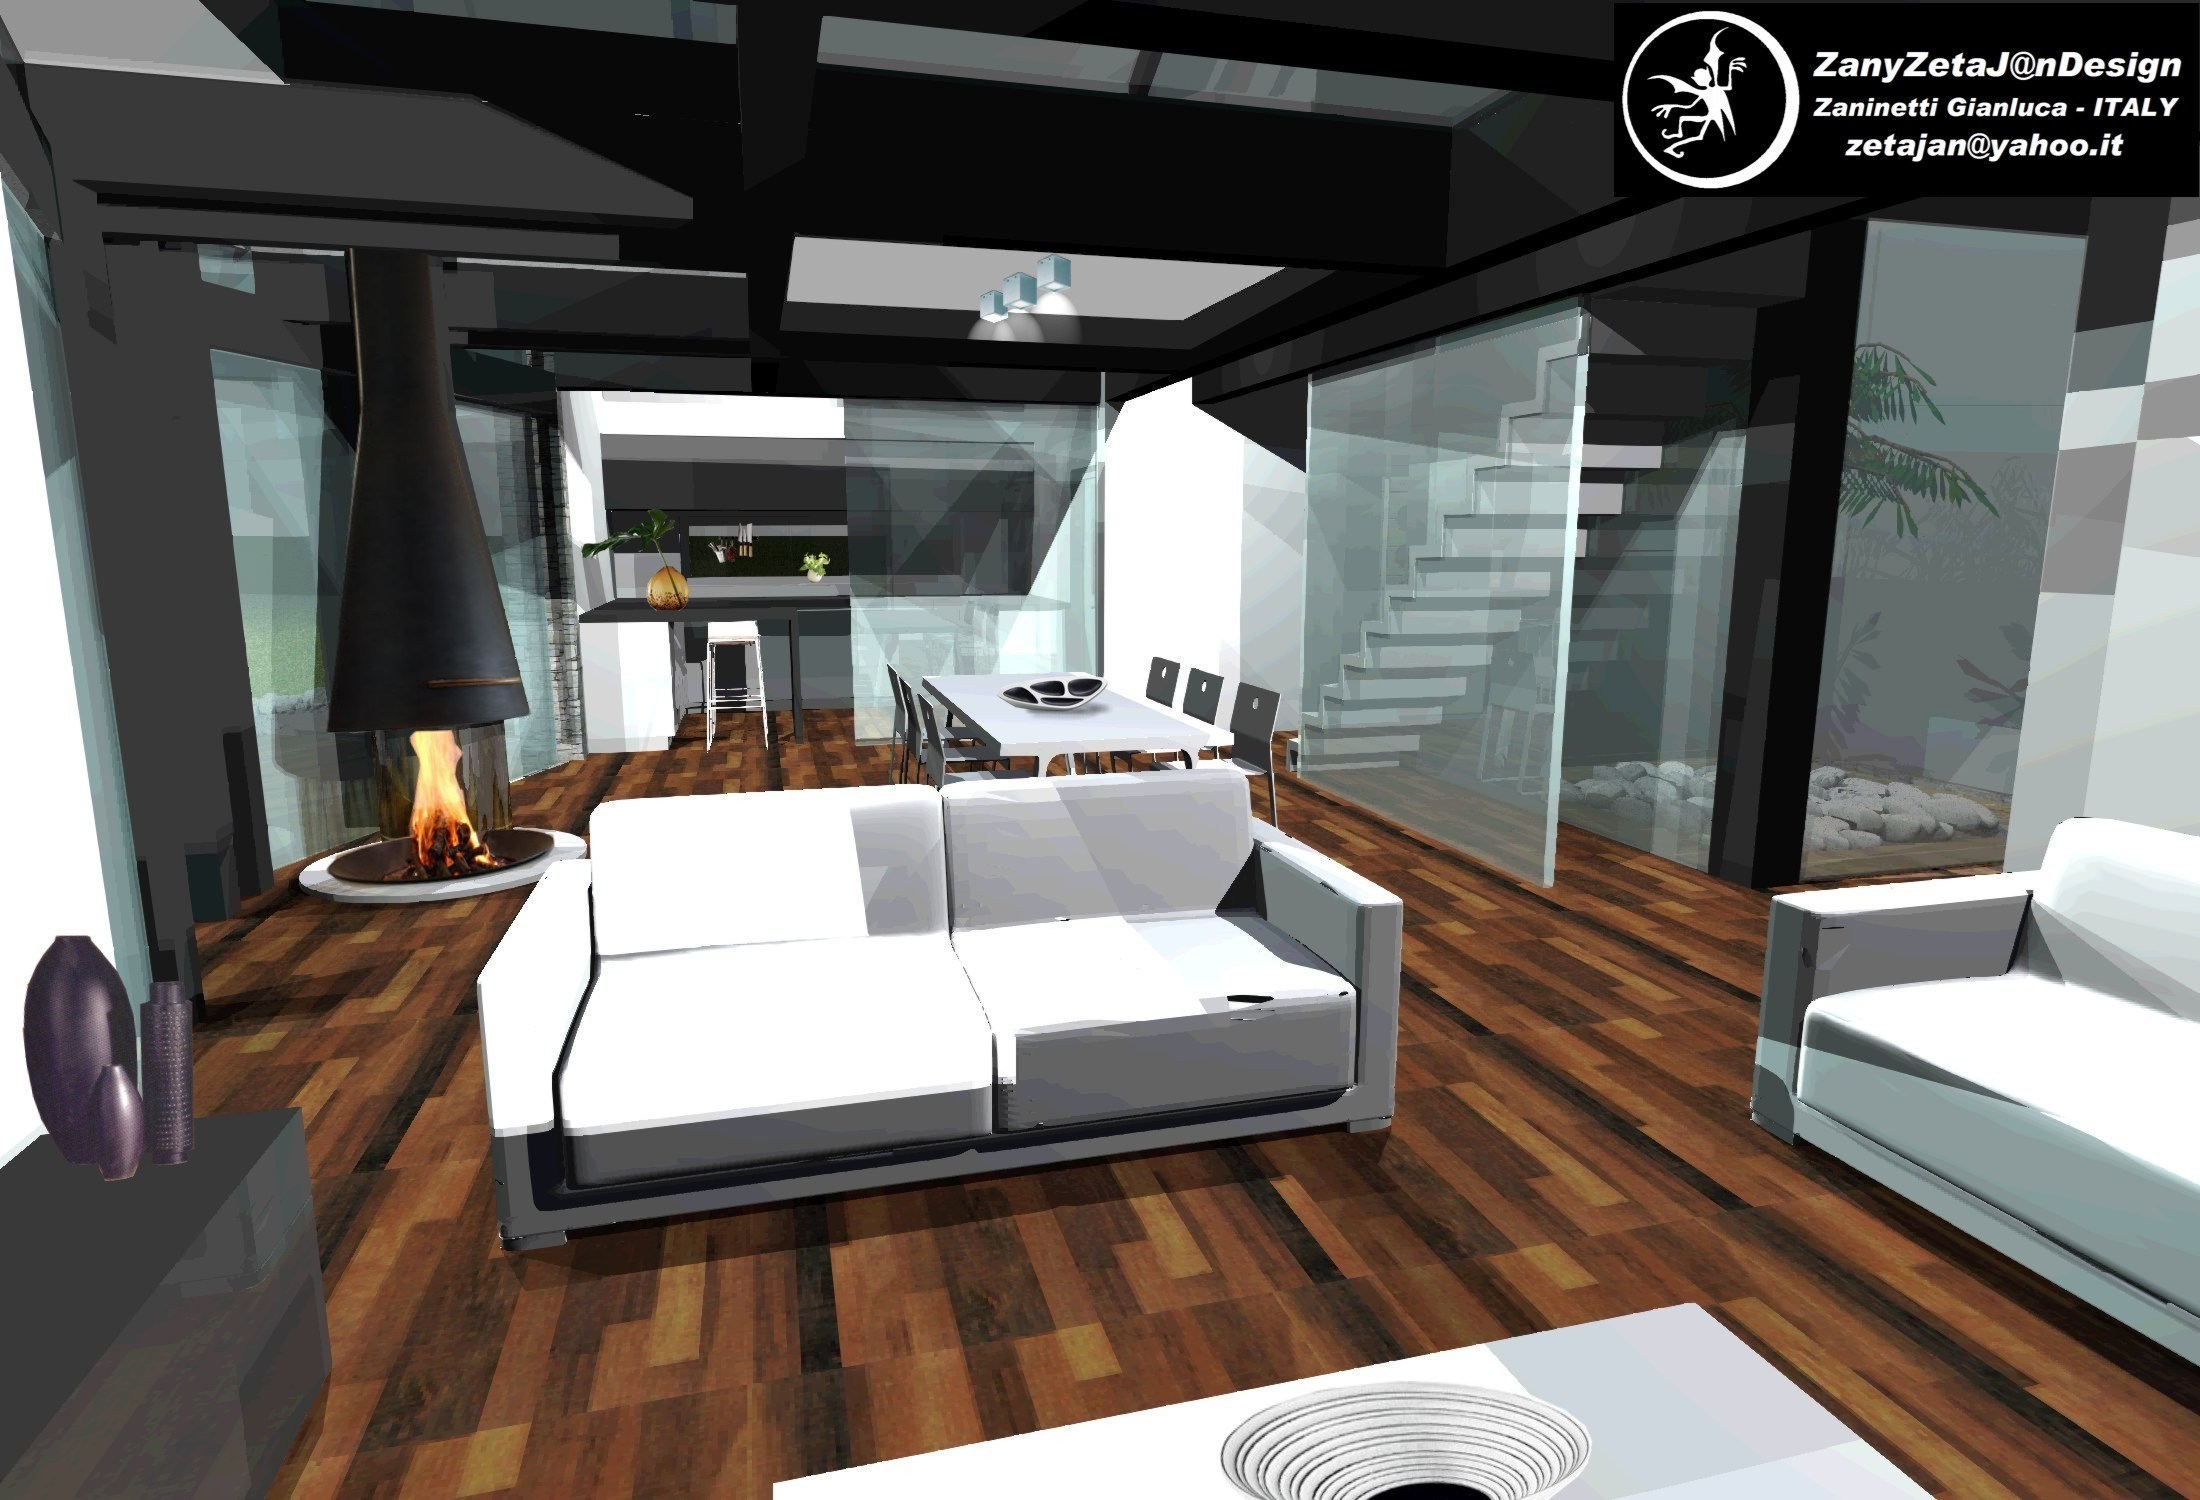 pin arcon 3d architect designer eleco objects free software for wallpaper on pinterest. Black Bedroom Furniture Sets. Home Design Ideas